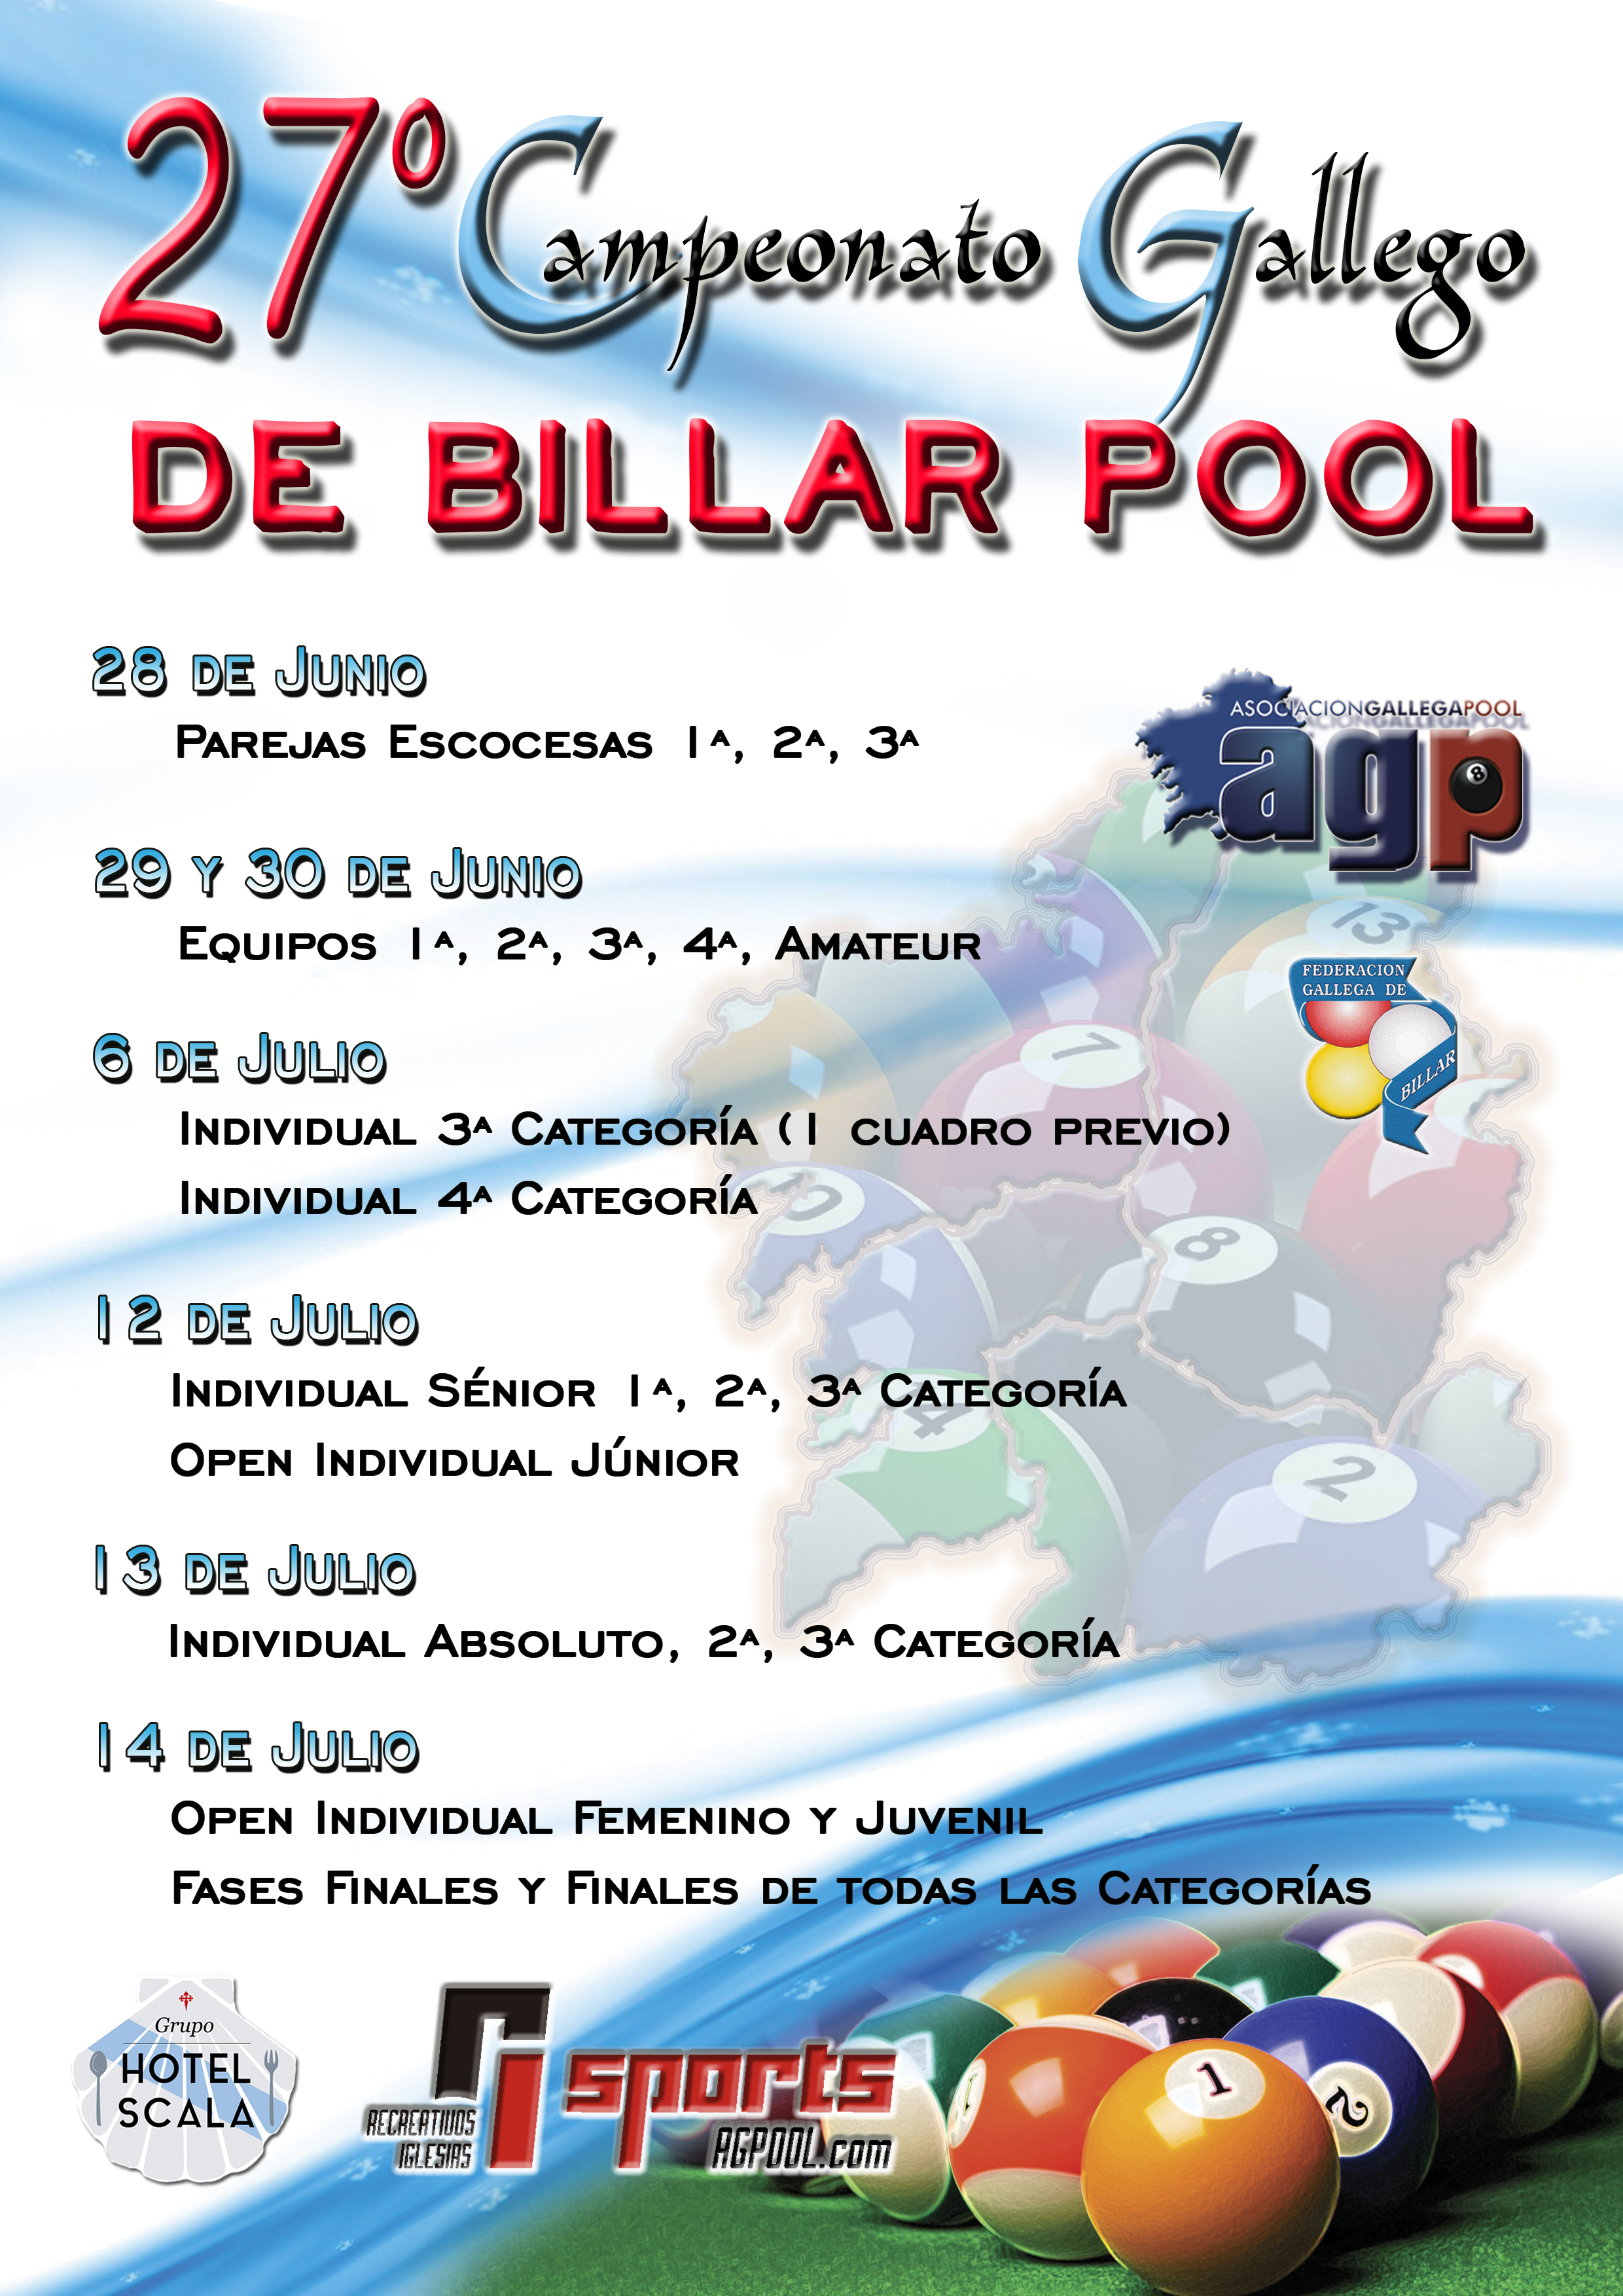 27º CAMPEONATO GALLEGO DE BILLAR POOL 2019